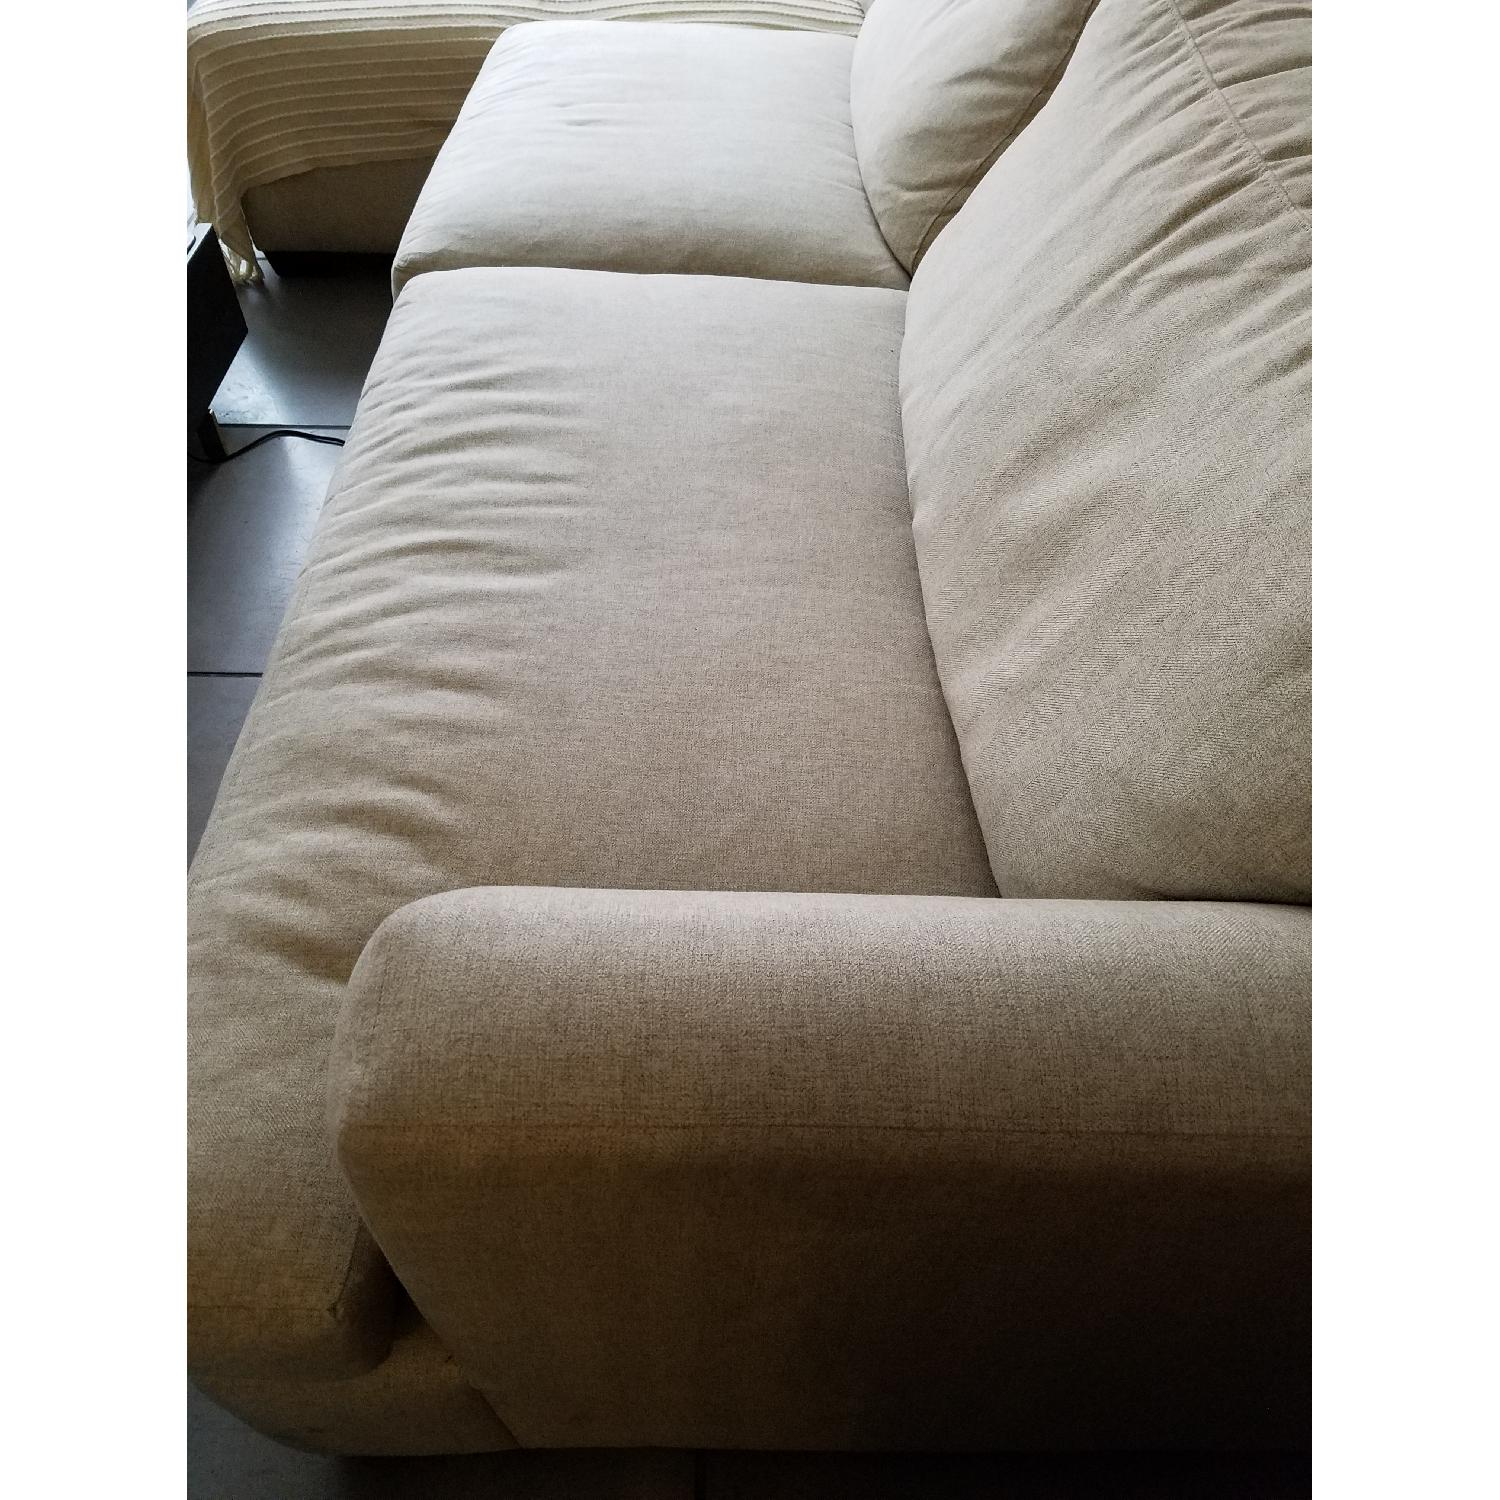 Jennifer Convertibles Sectional Sofa w/ Chaise - image-4